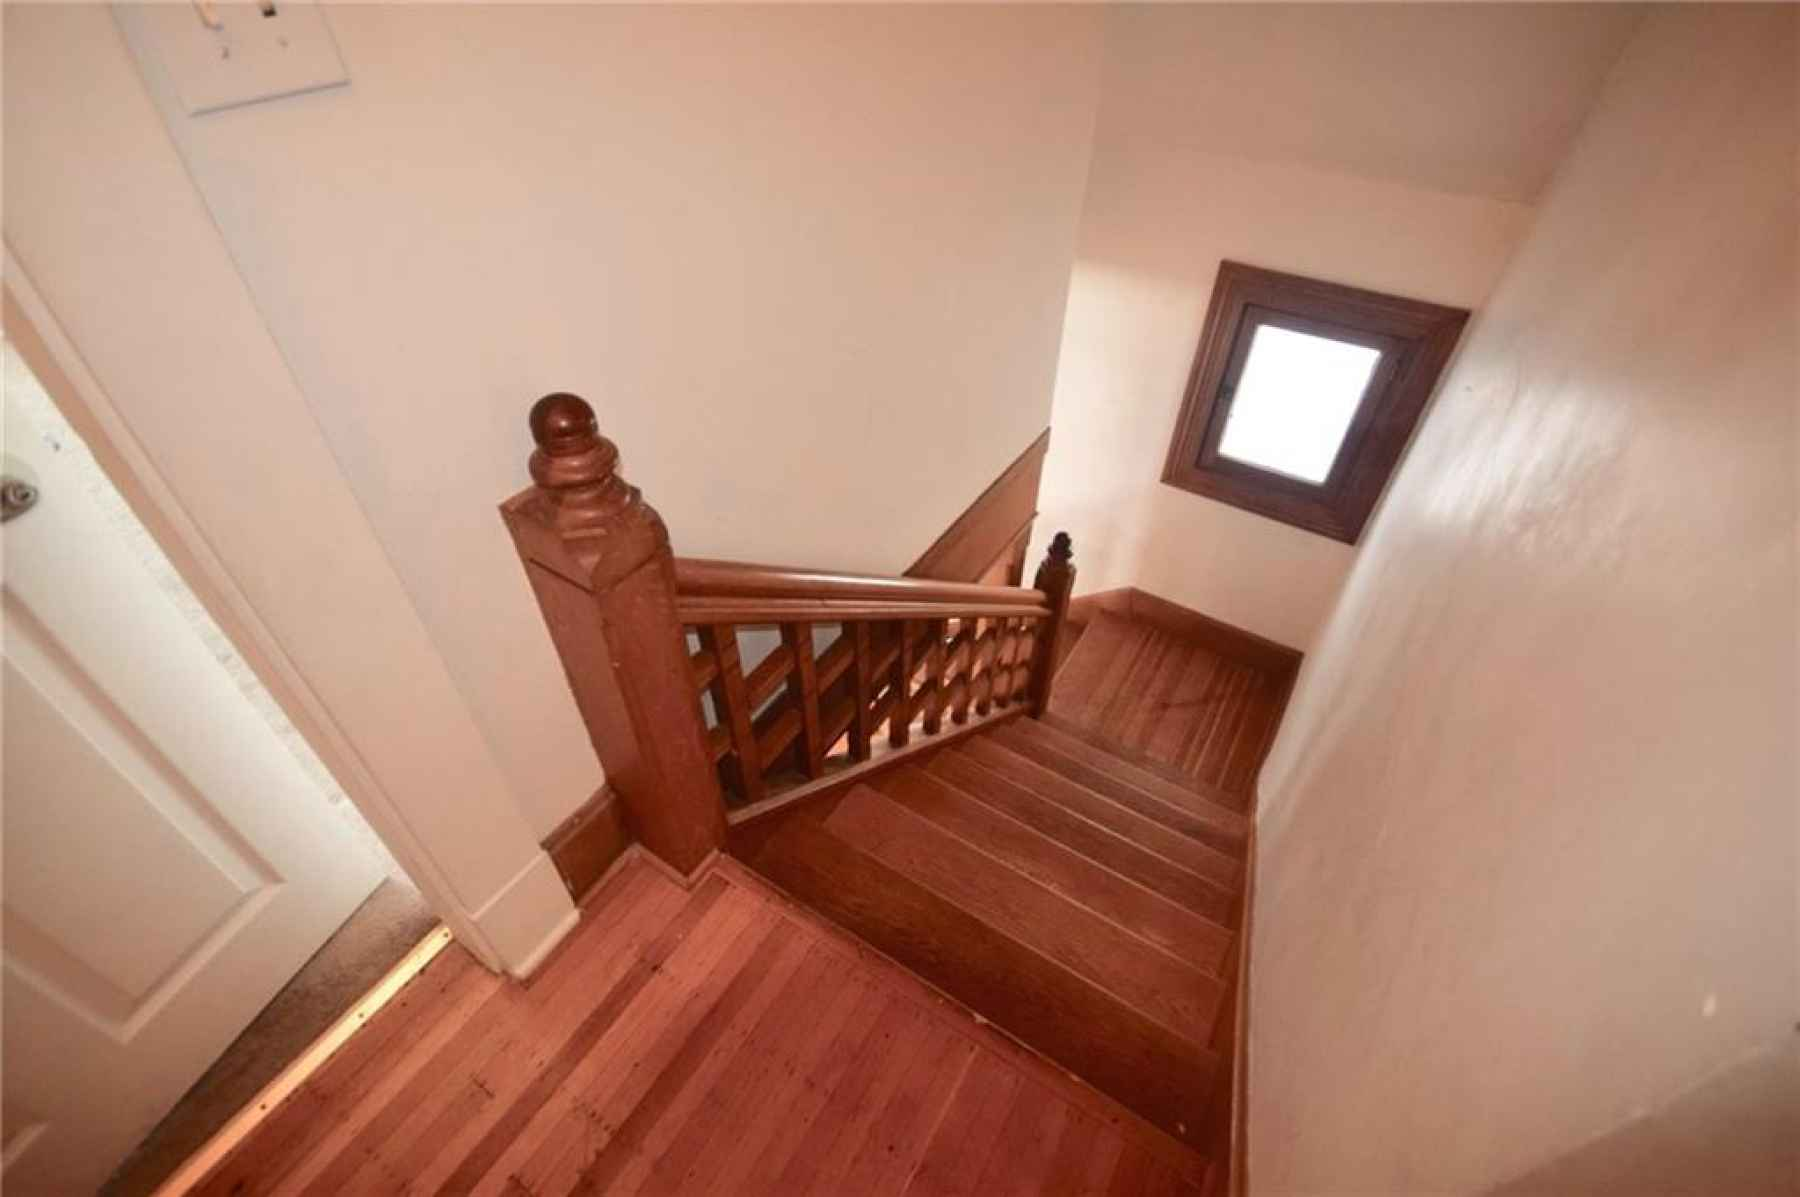 Staircase from second floor landing.